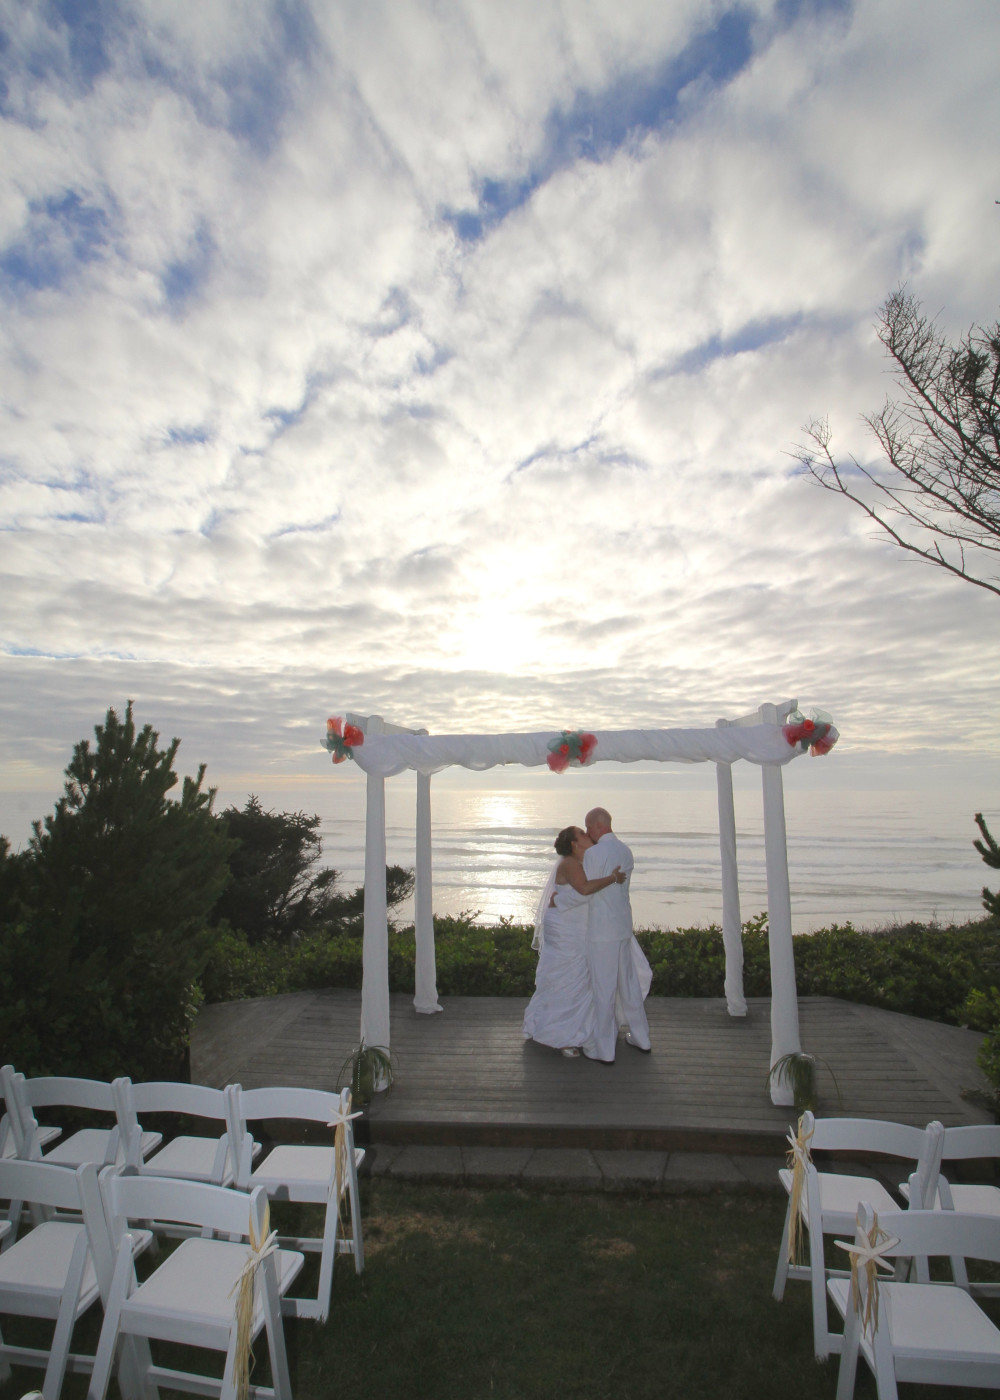 Wedding Wise: What type of wedding do I want?